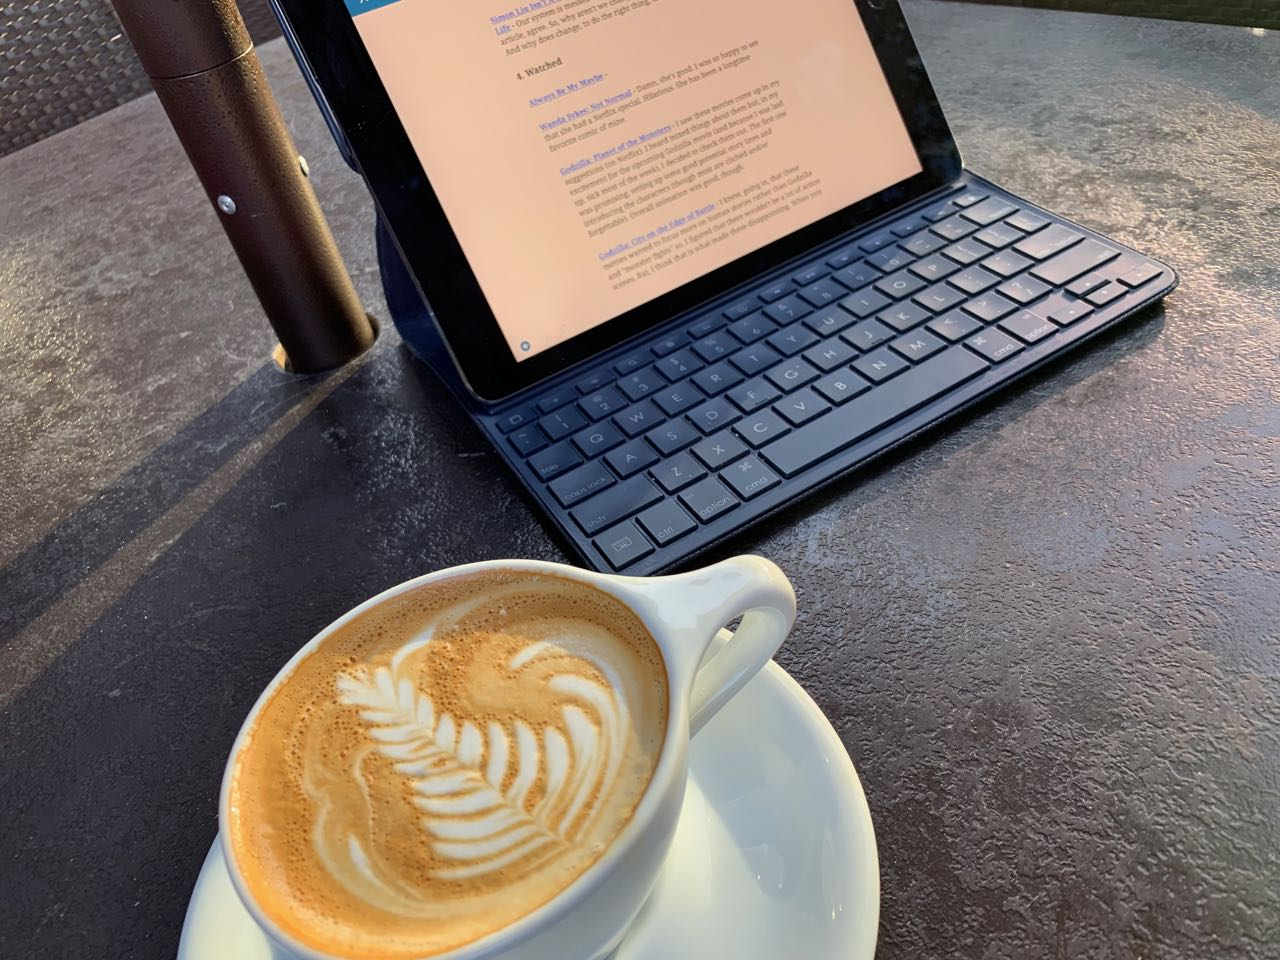 Flat white coffee and ipad with keyboard